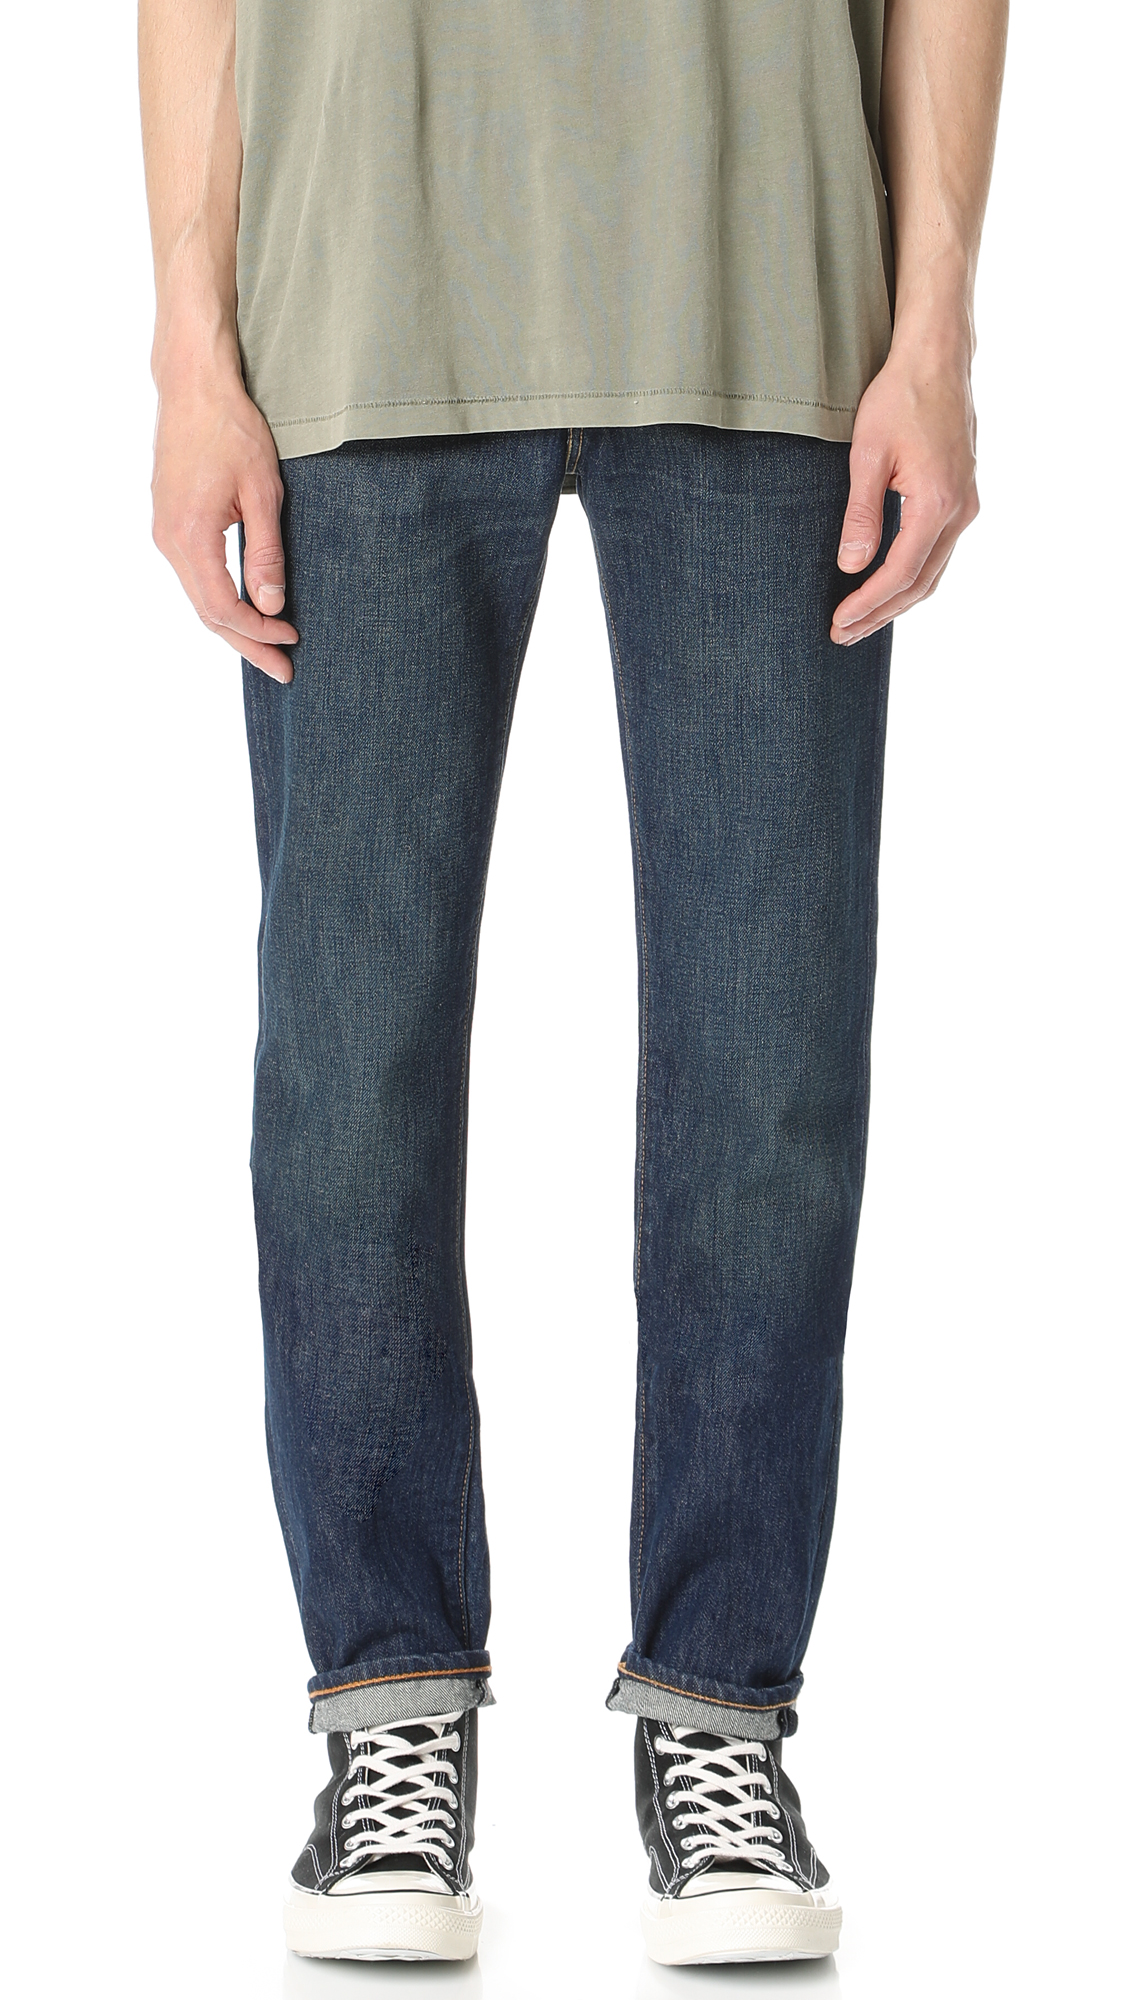 511 Made in the USA Slim Fit Jeans